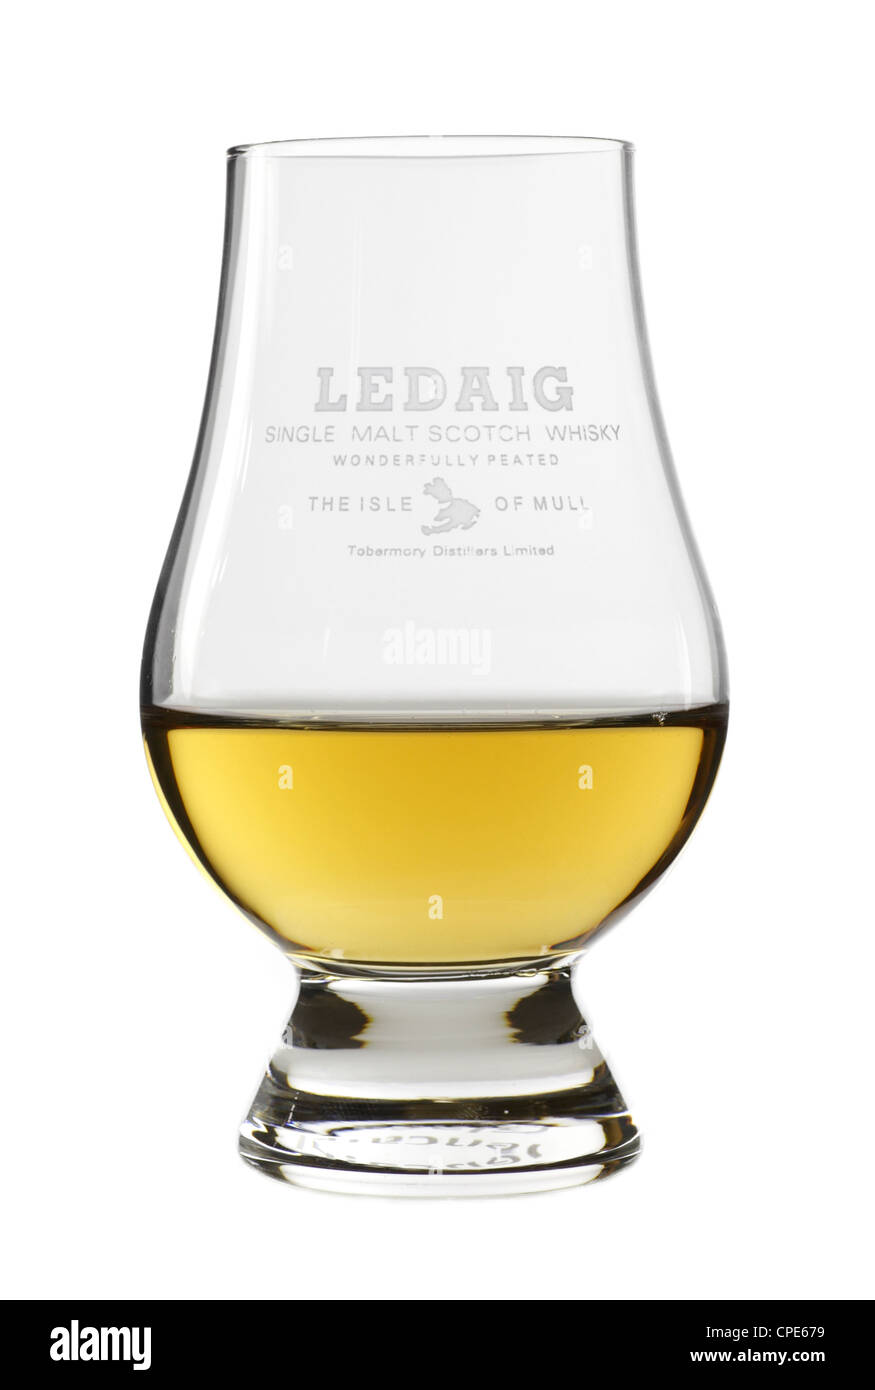 Ledaig whisky in its own tasting glass - Stock Image